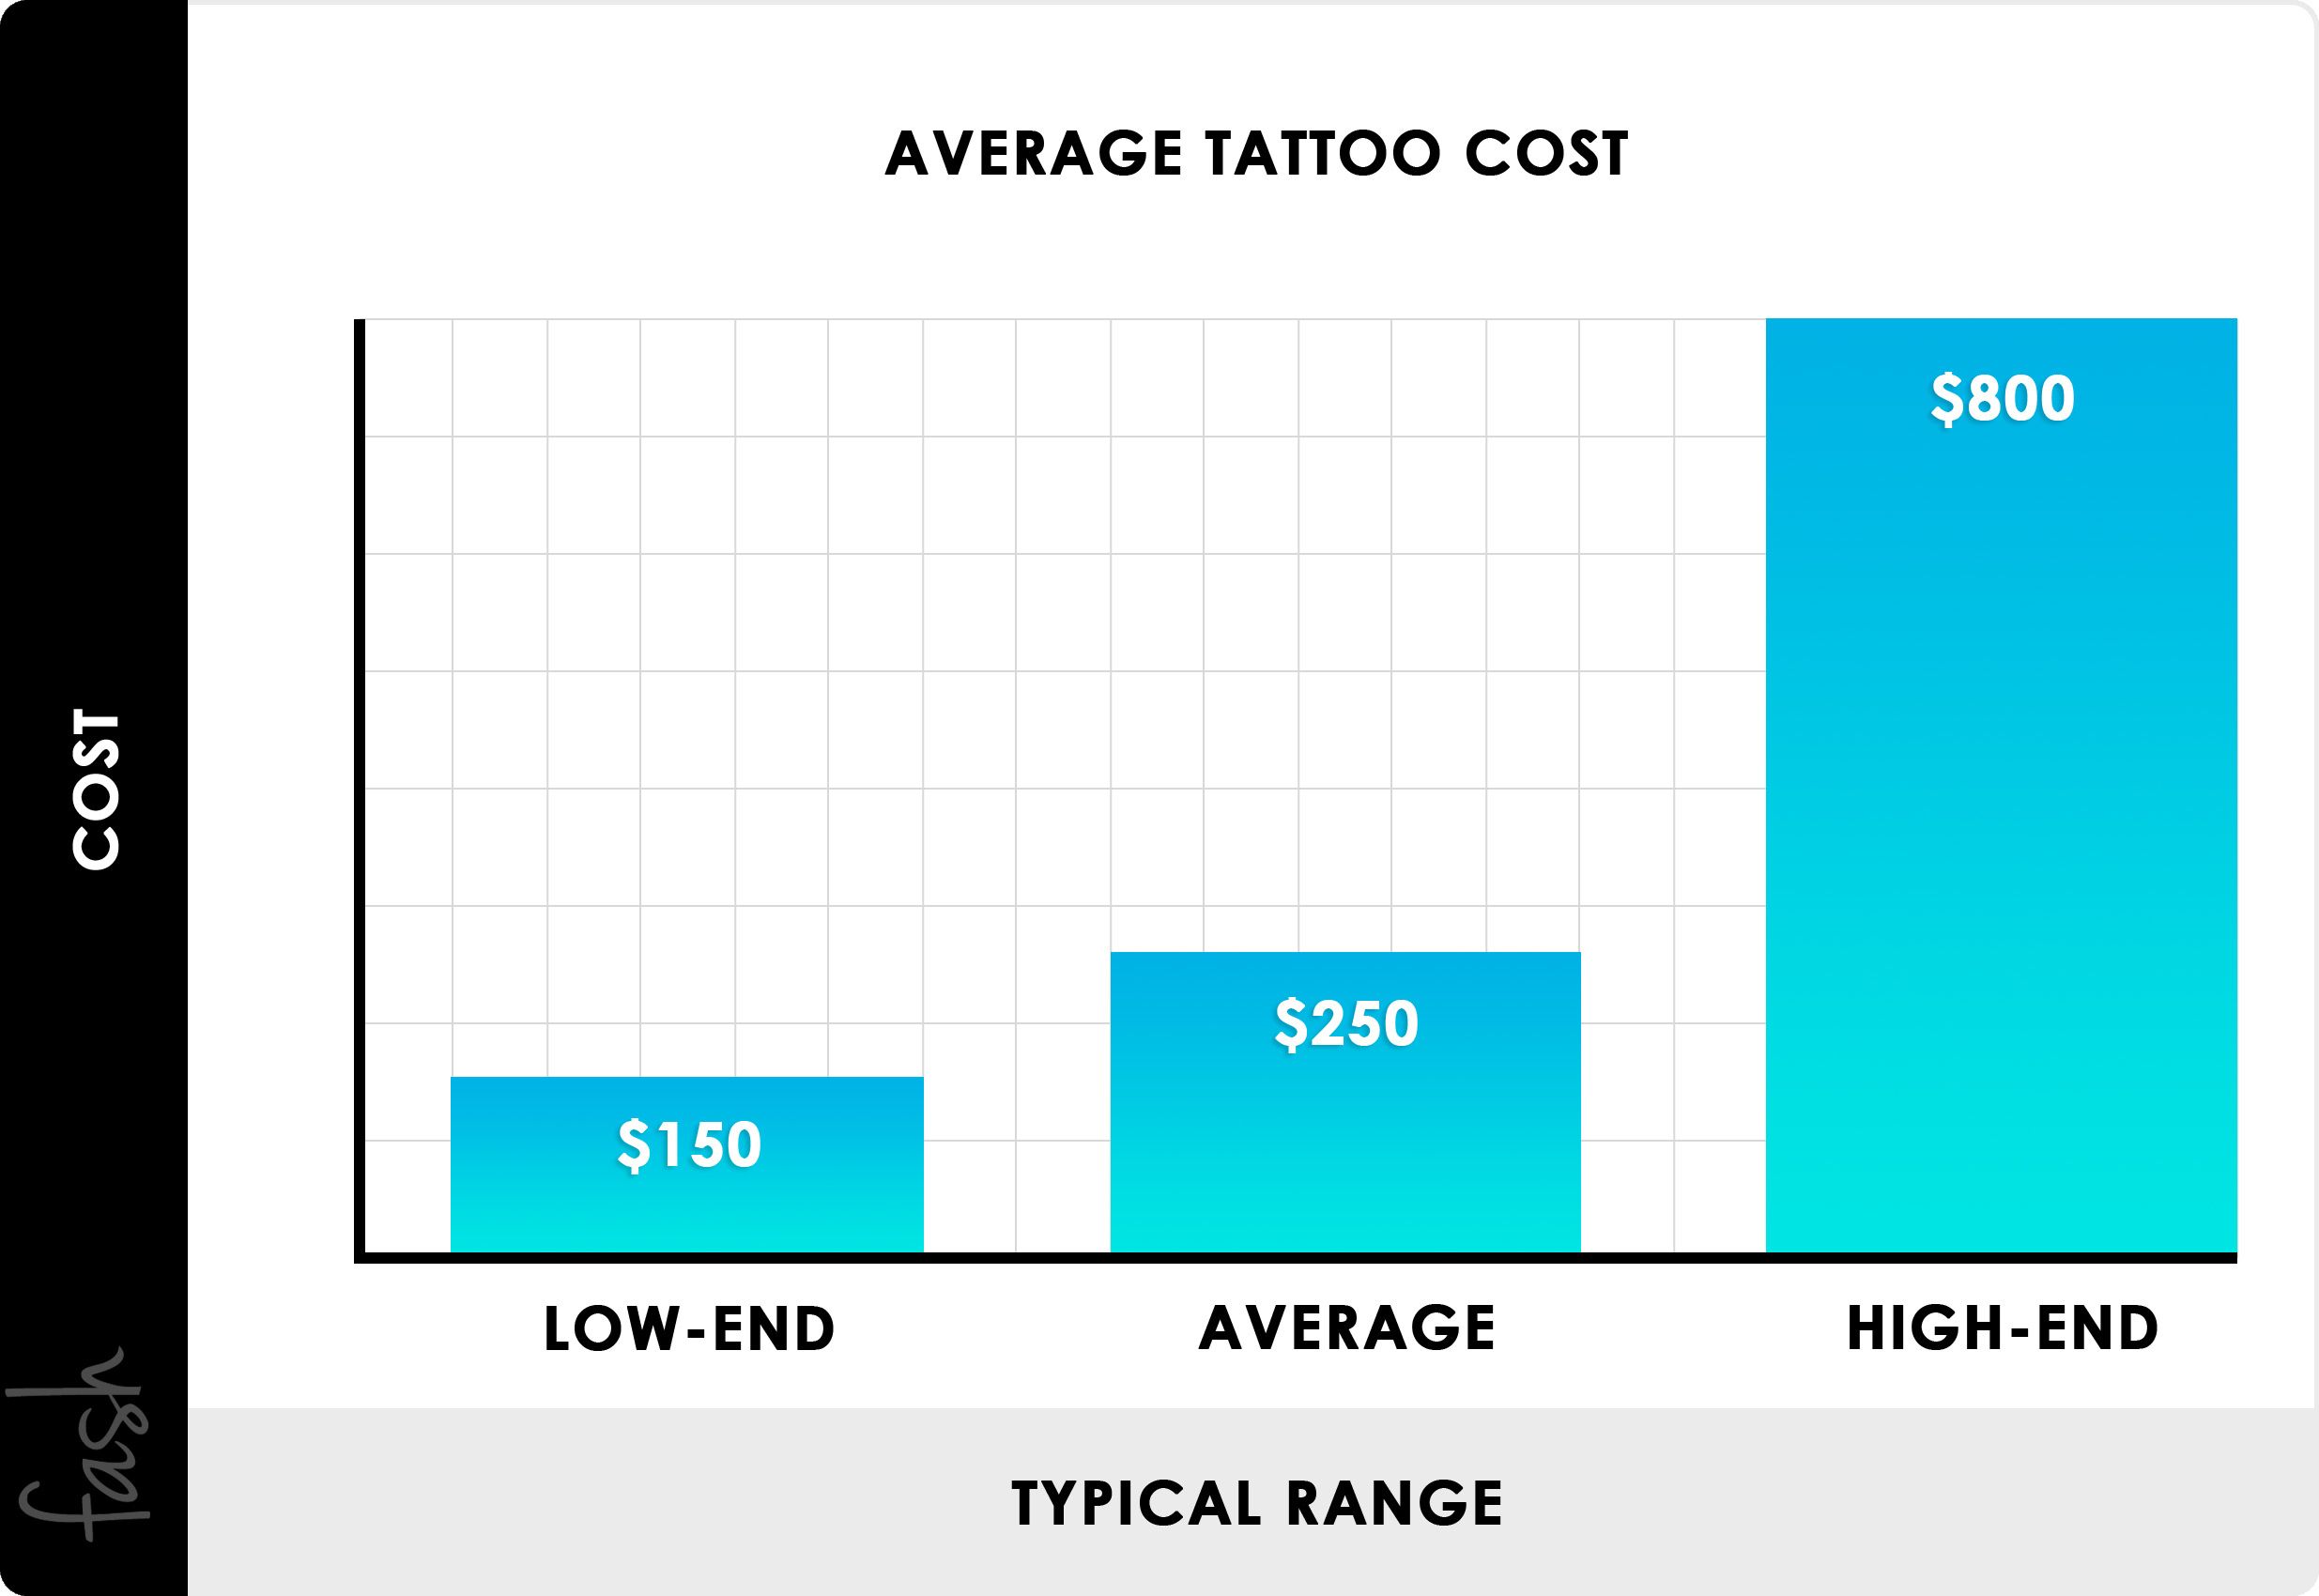 12961a1fd 2019 Tattoo Prices | Average Tattoo Costs (by Size & Examples)